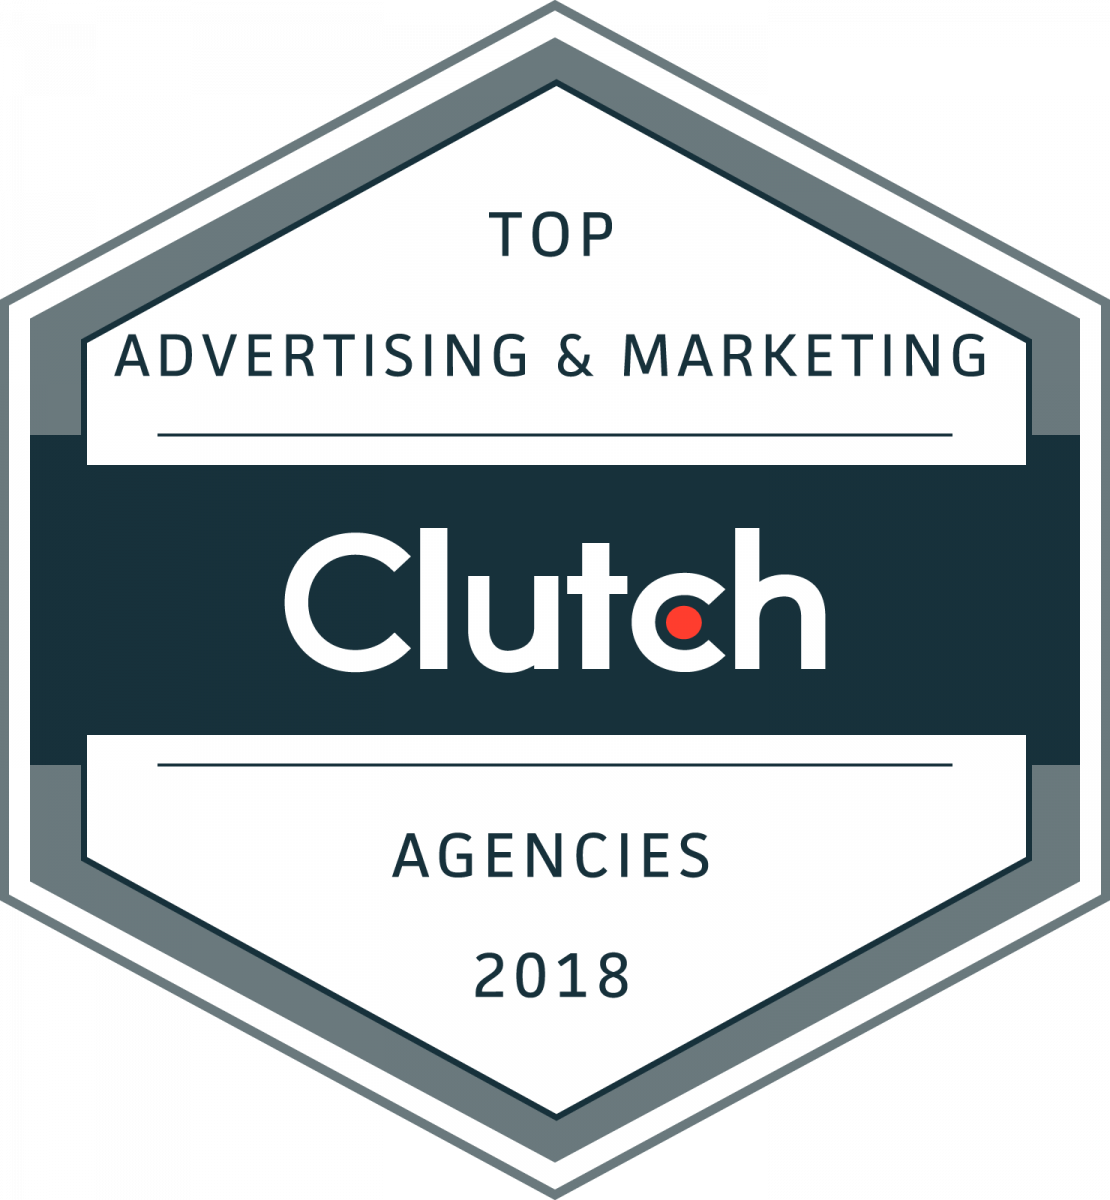 New Research Identifies Top Advertising, Marketing, Social